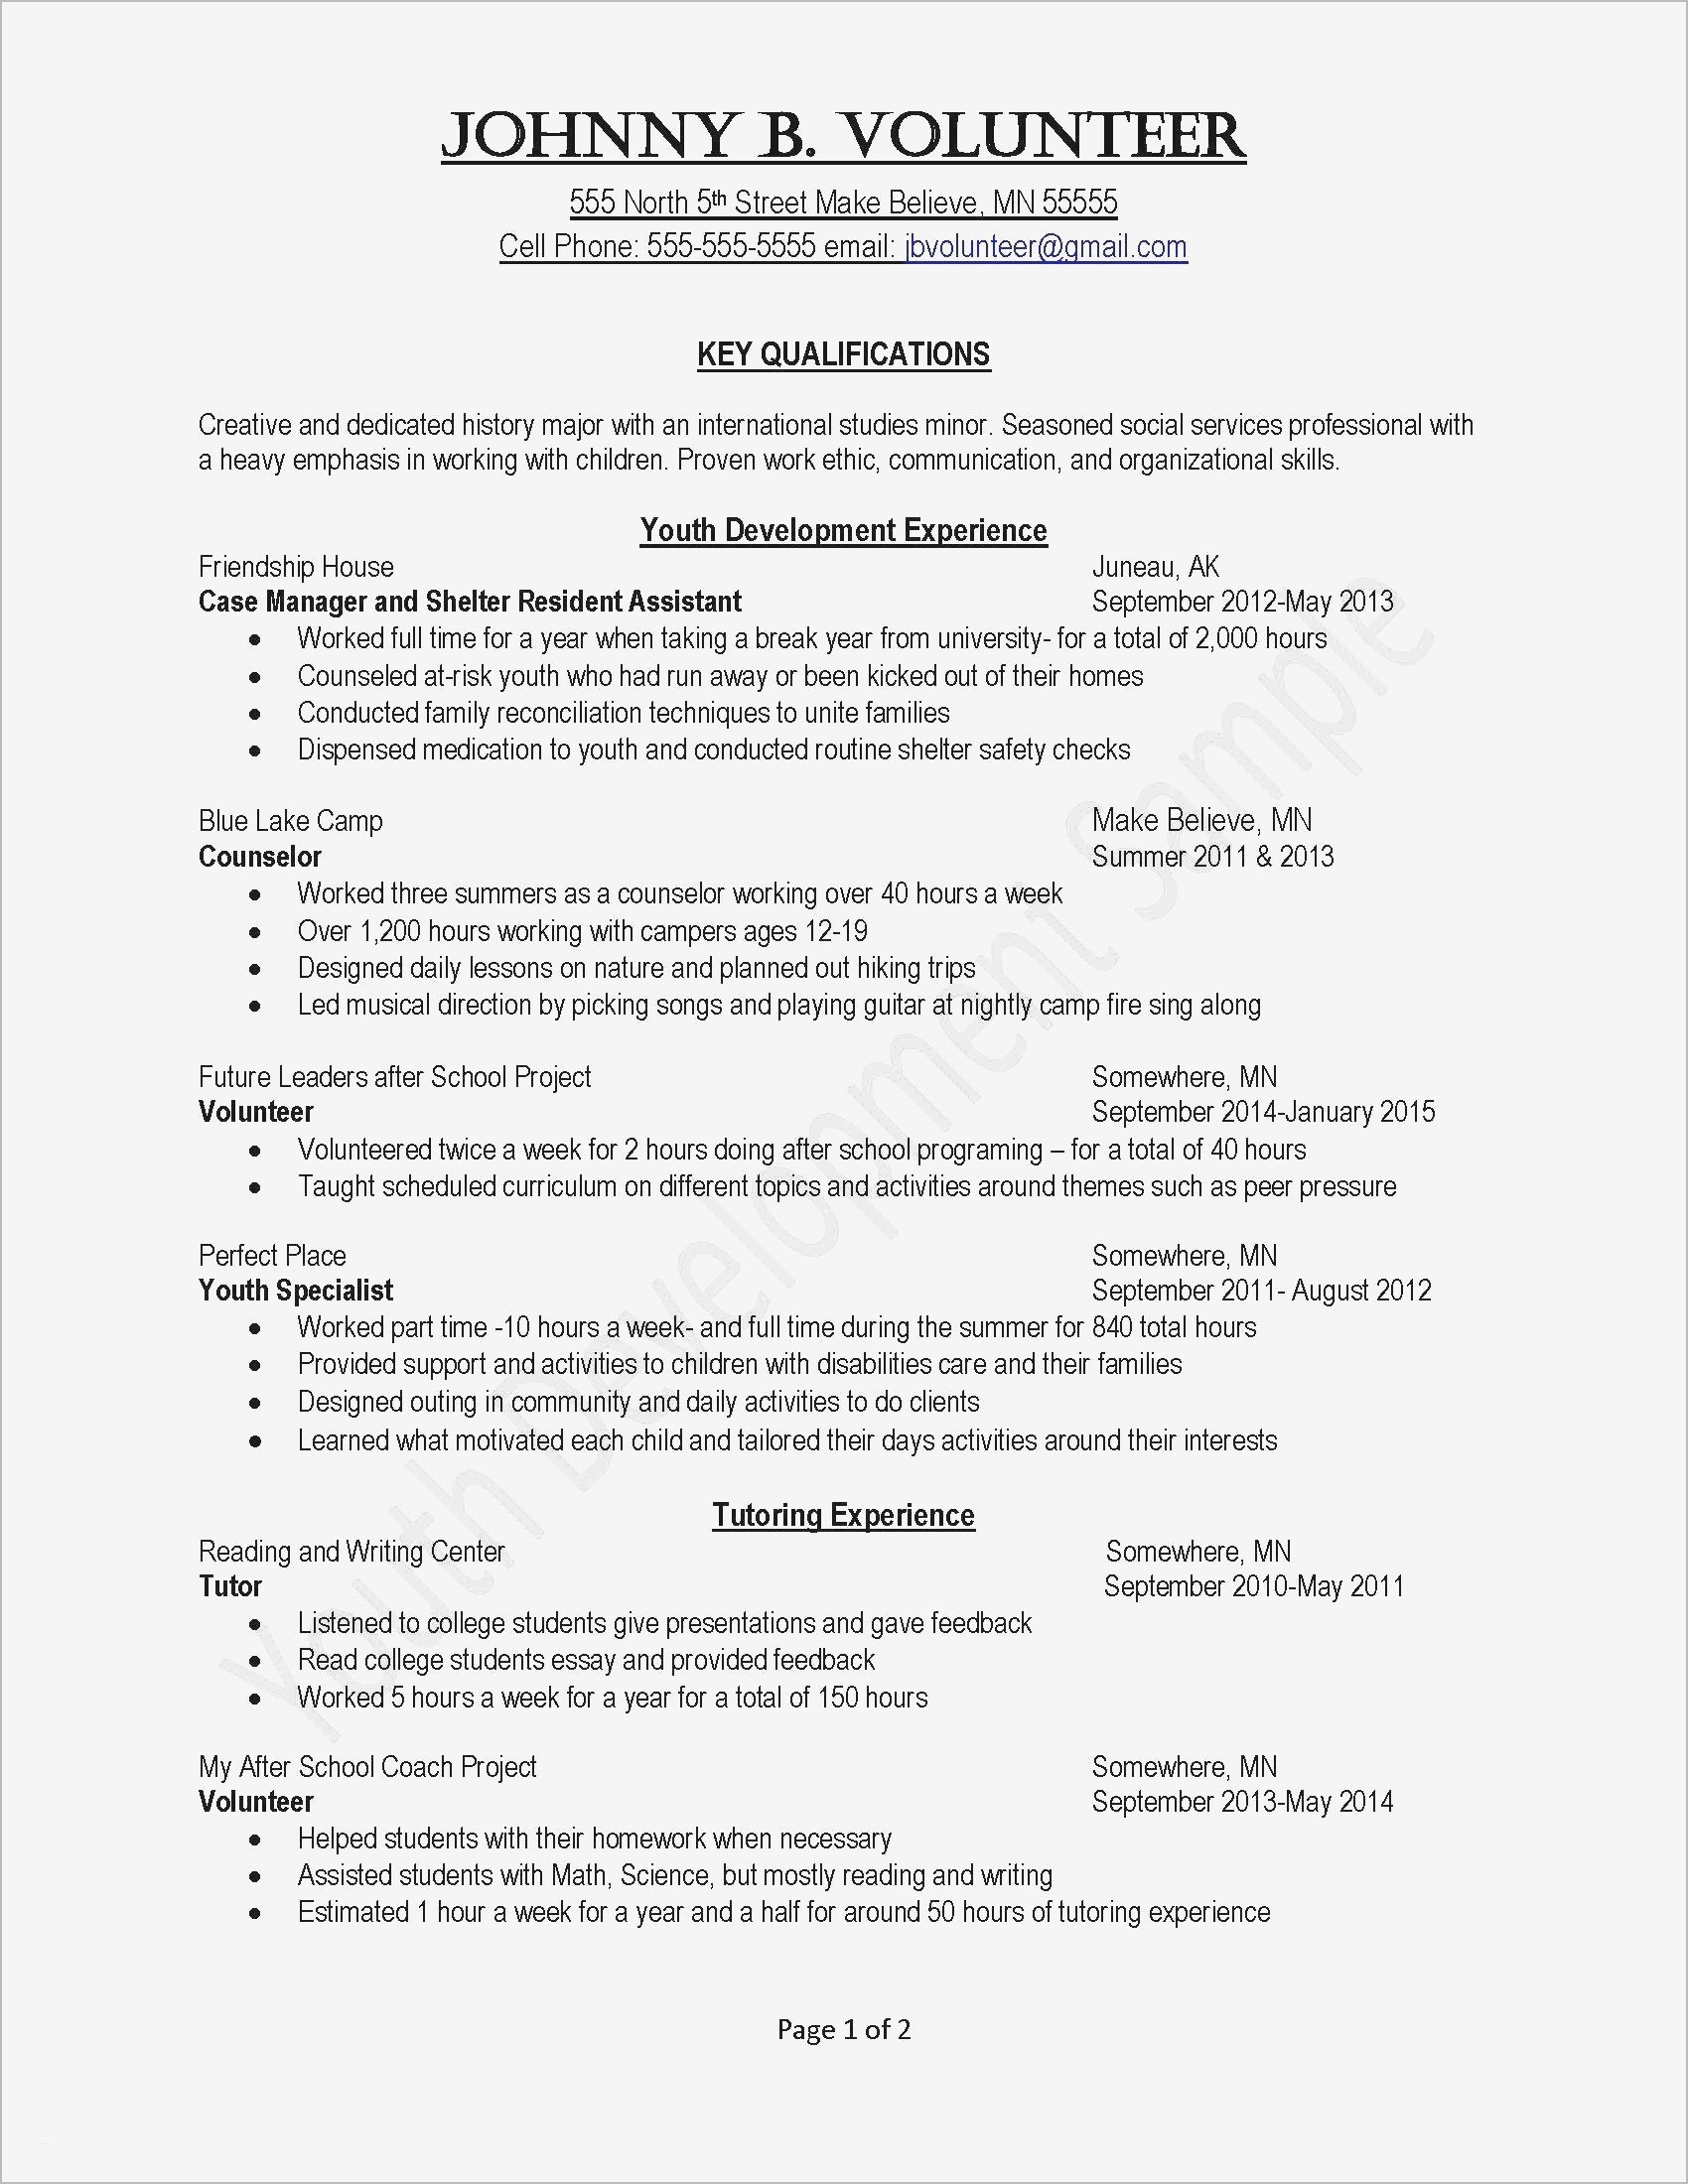 Open Office Cover Letter Template Free - Unique Cover Letter for Resume Template Free